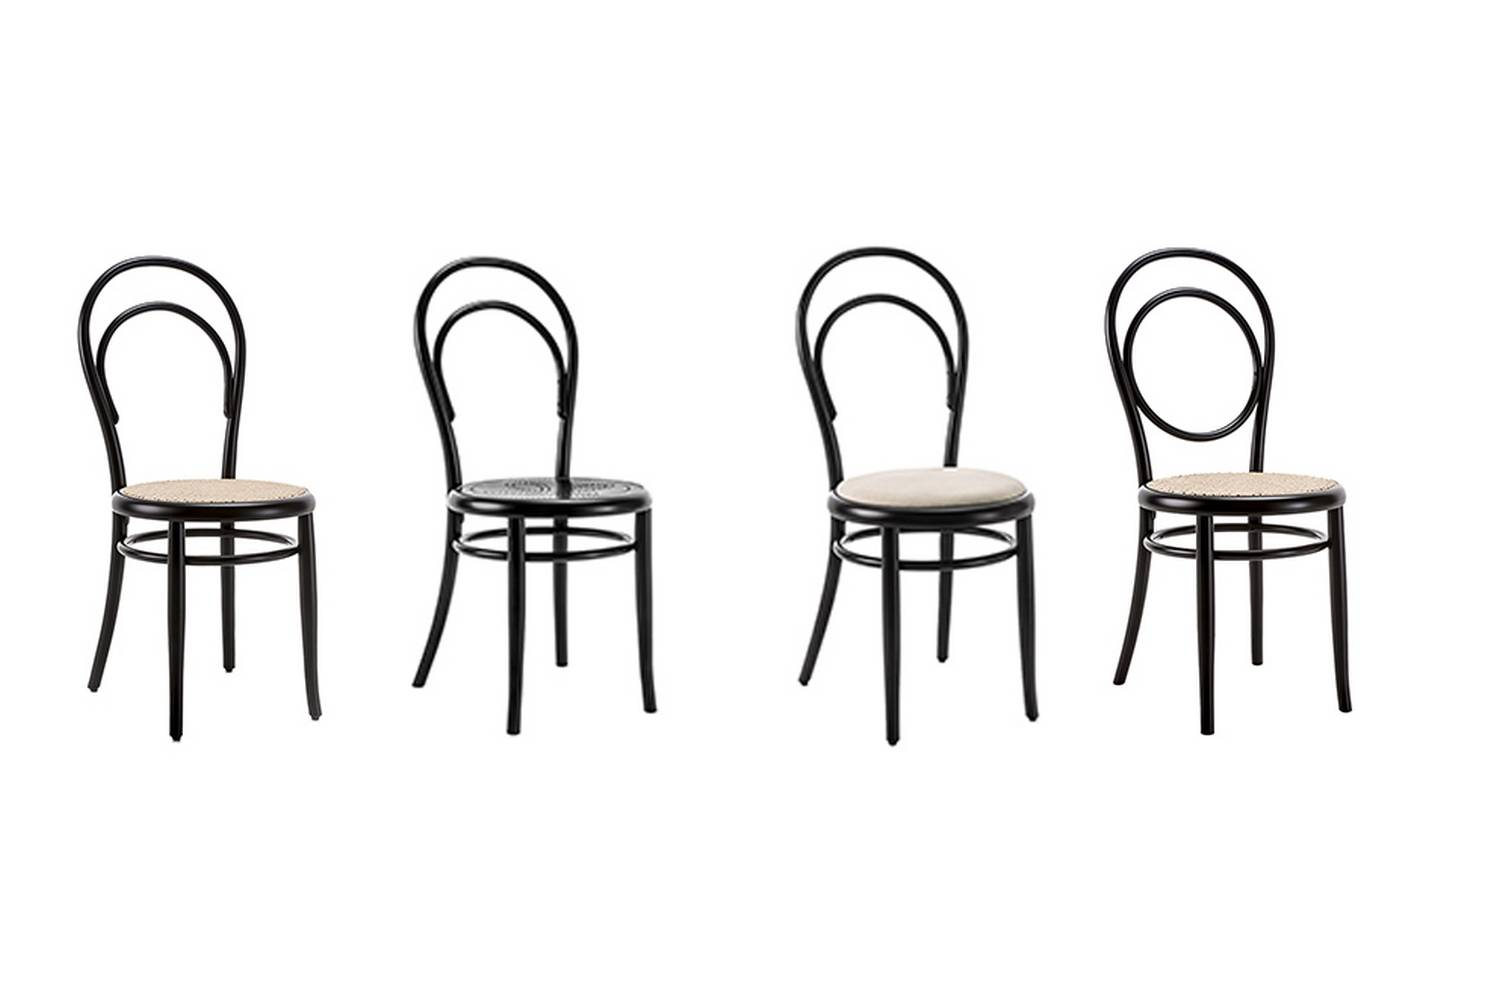 Chair No. 14 is probably the most well-known piece made by Gebrüder Thonet Vienna.